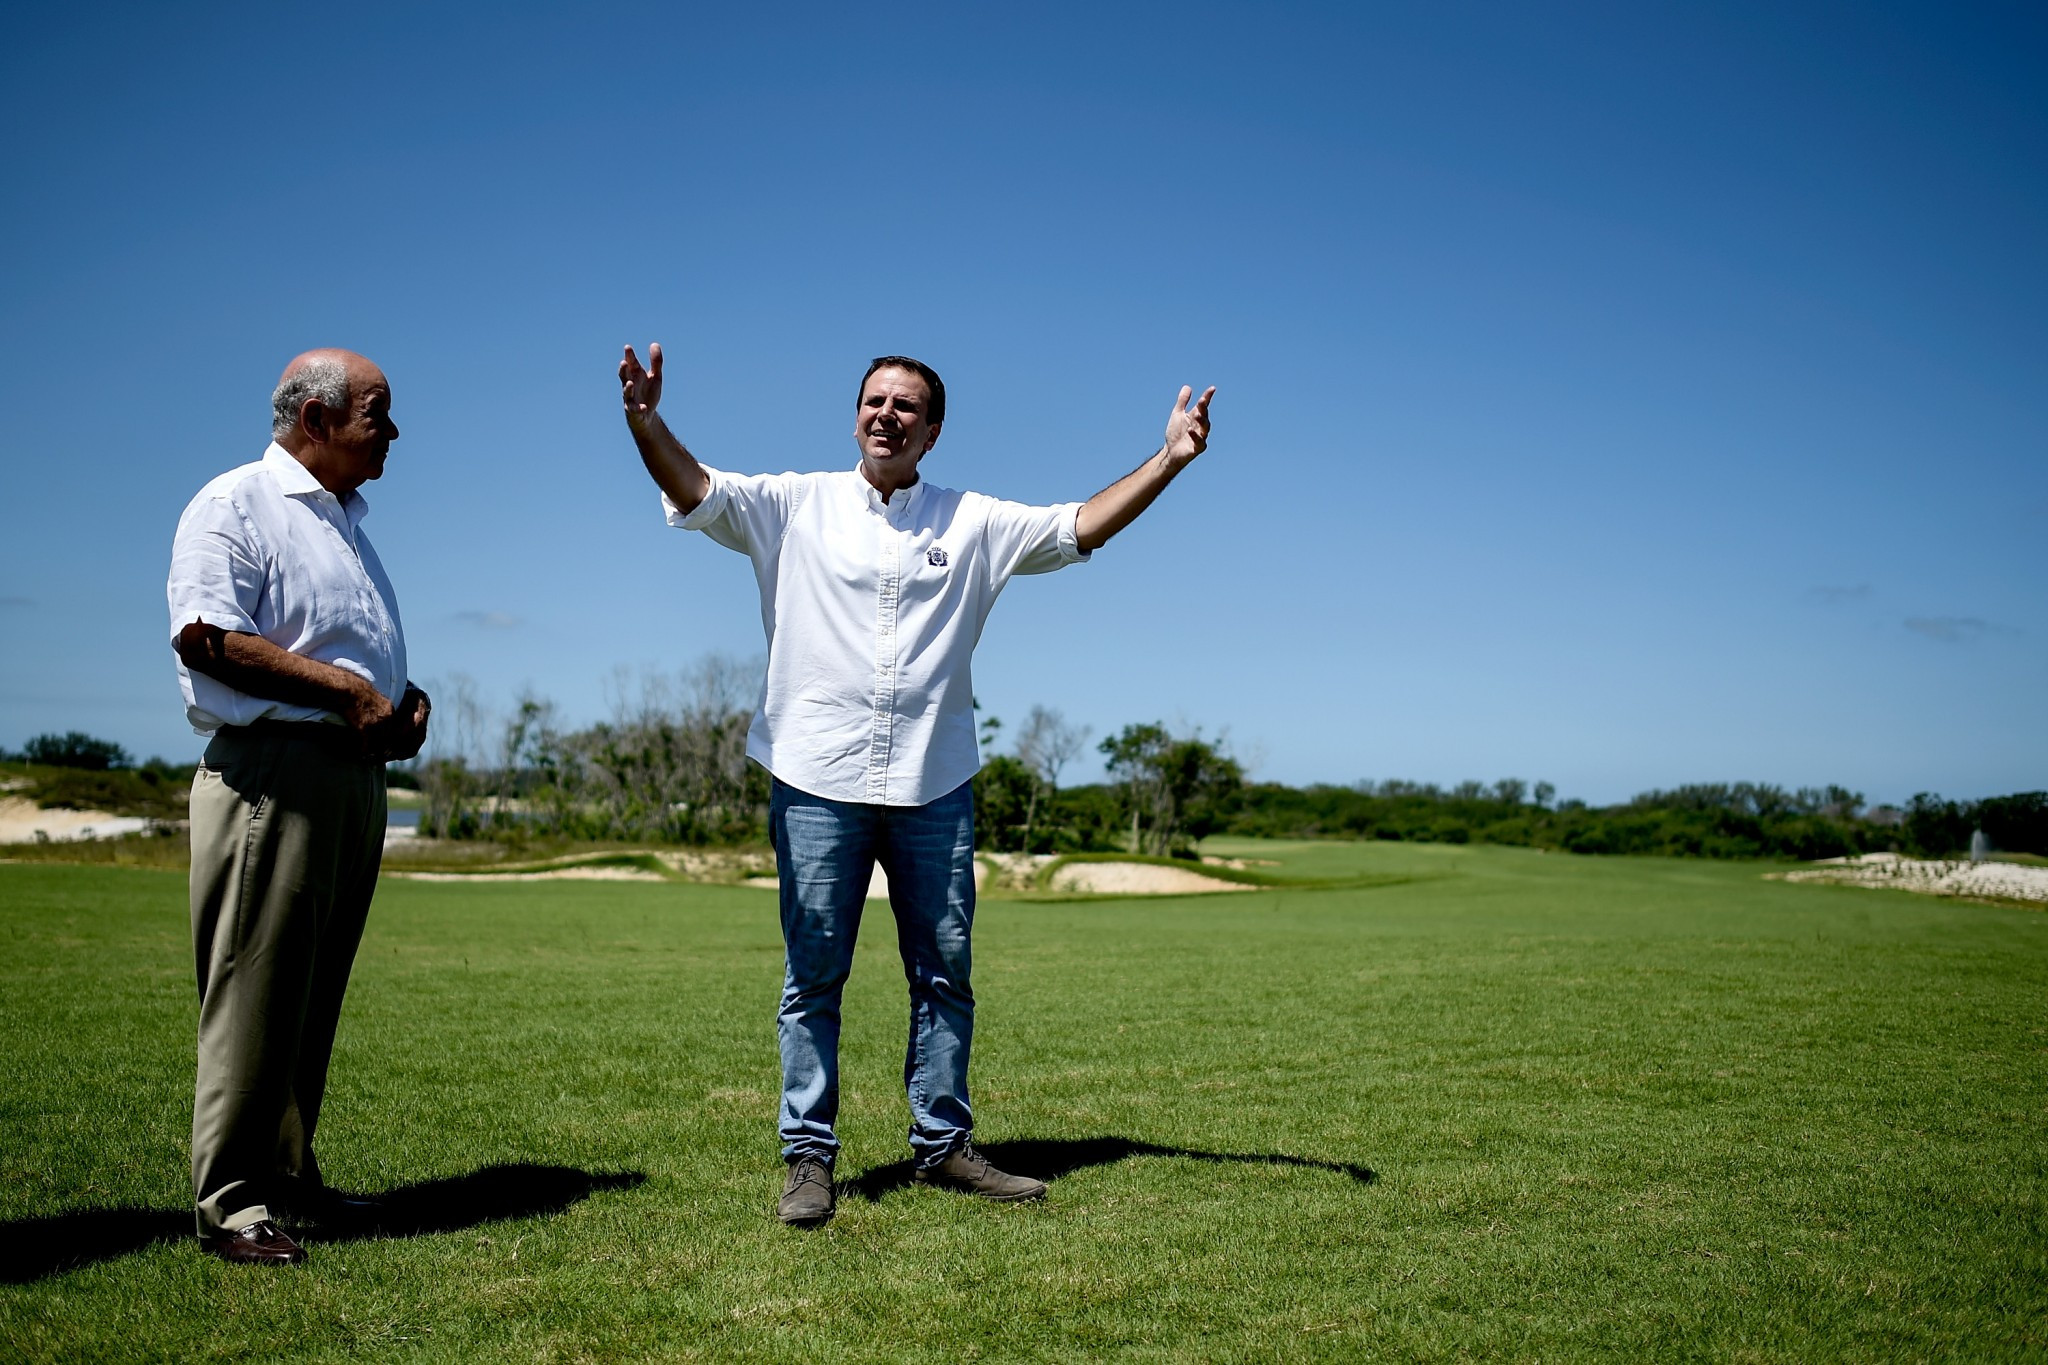 Former Rio Mayor facing corruption charges over Olympic golf course